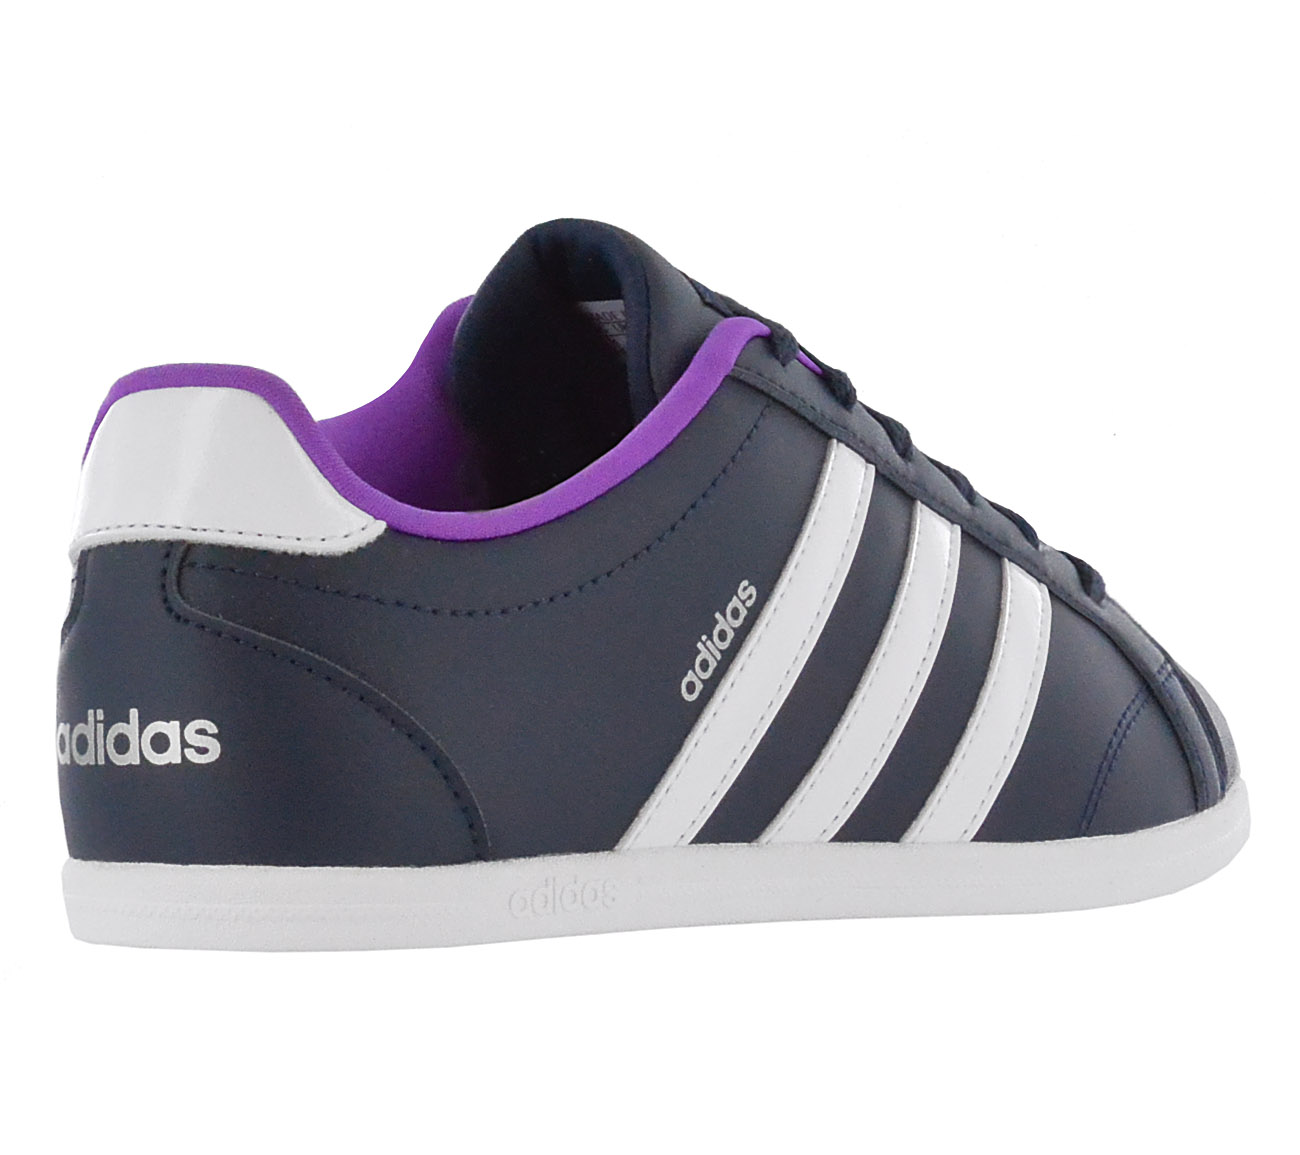 Adidas vs Coneo Qt W Shoes Women s Sneaker-Blue Sneakers Leisure ... a296154a6a